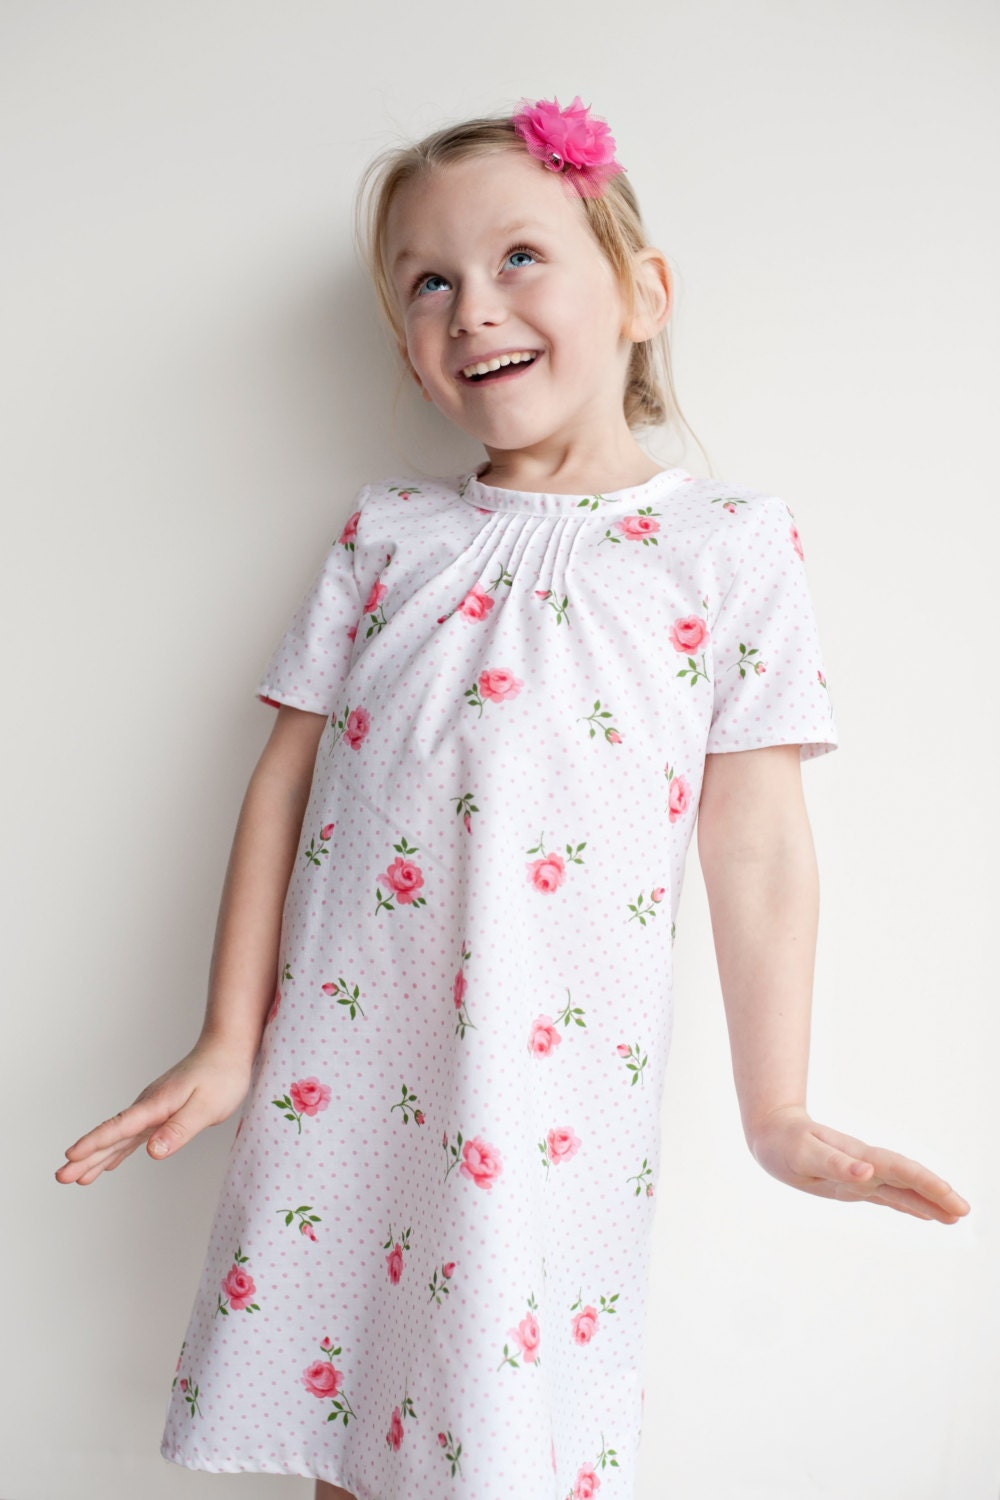 Pintuck blouse and dress pdf pattern and tutorial 6 12y easy sew this is a digital file jeuxipadfo Image collections